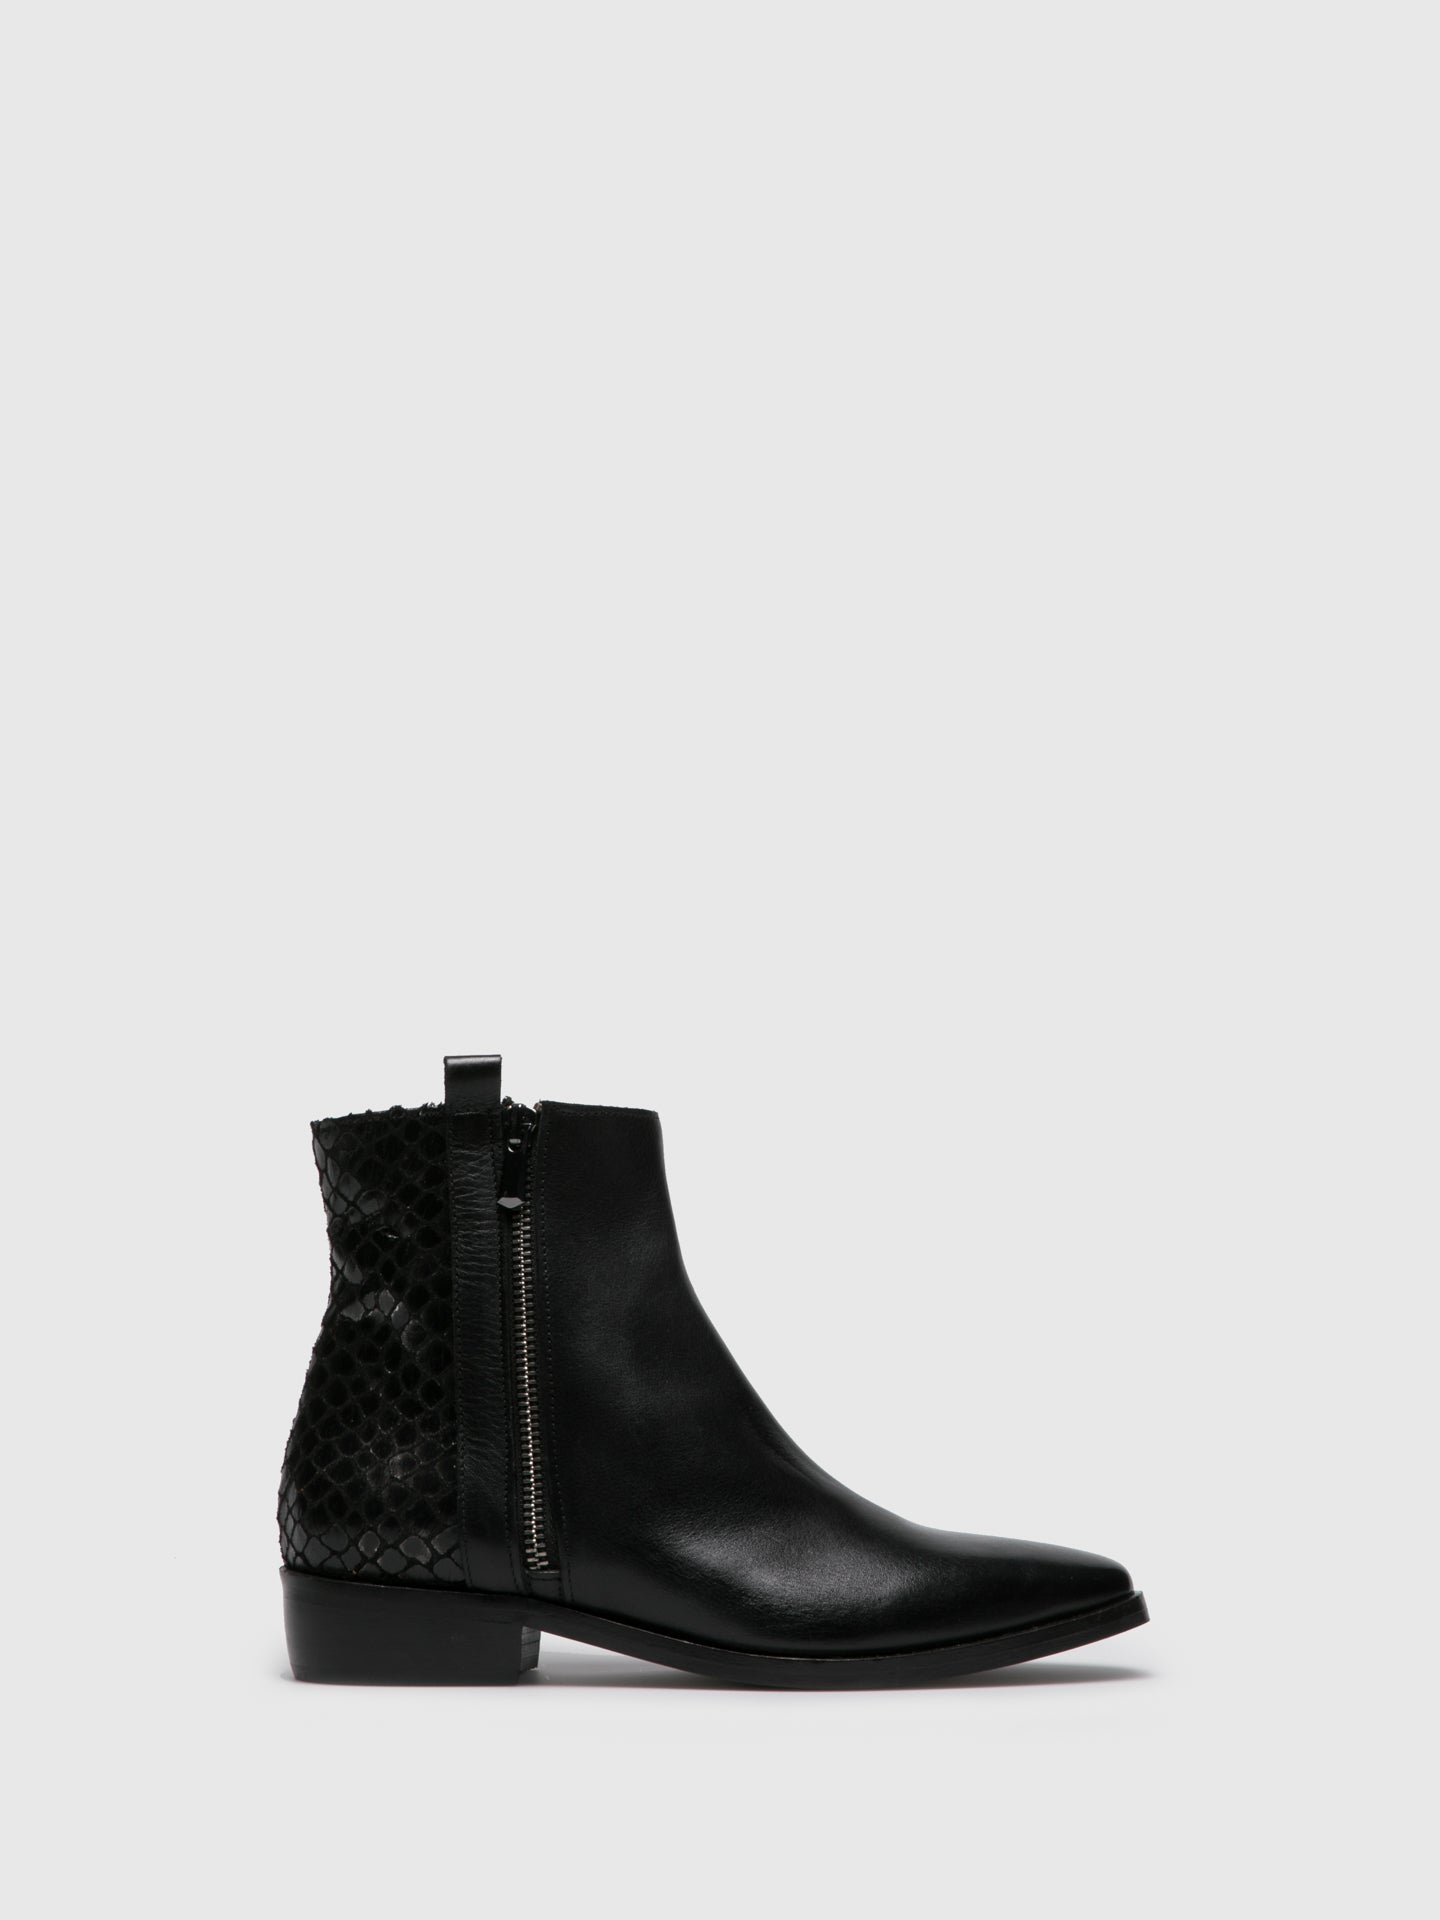 Foreva Black Zip Up Ankle Boots